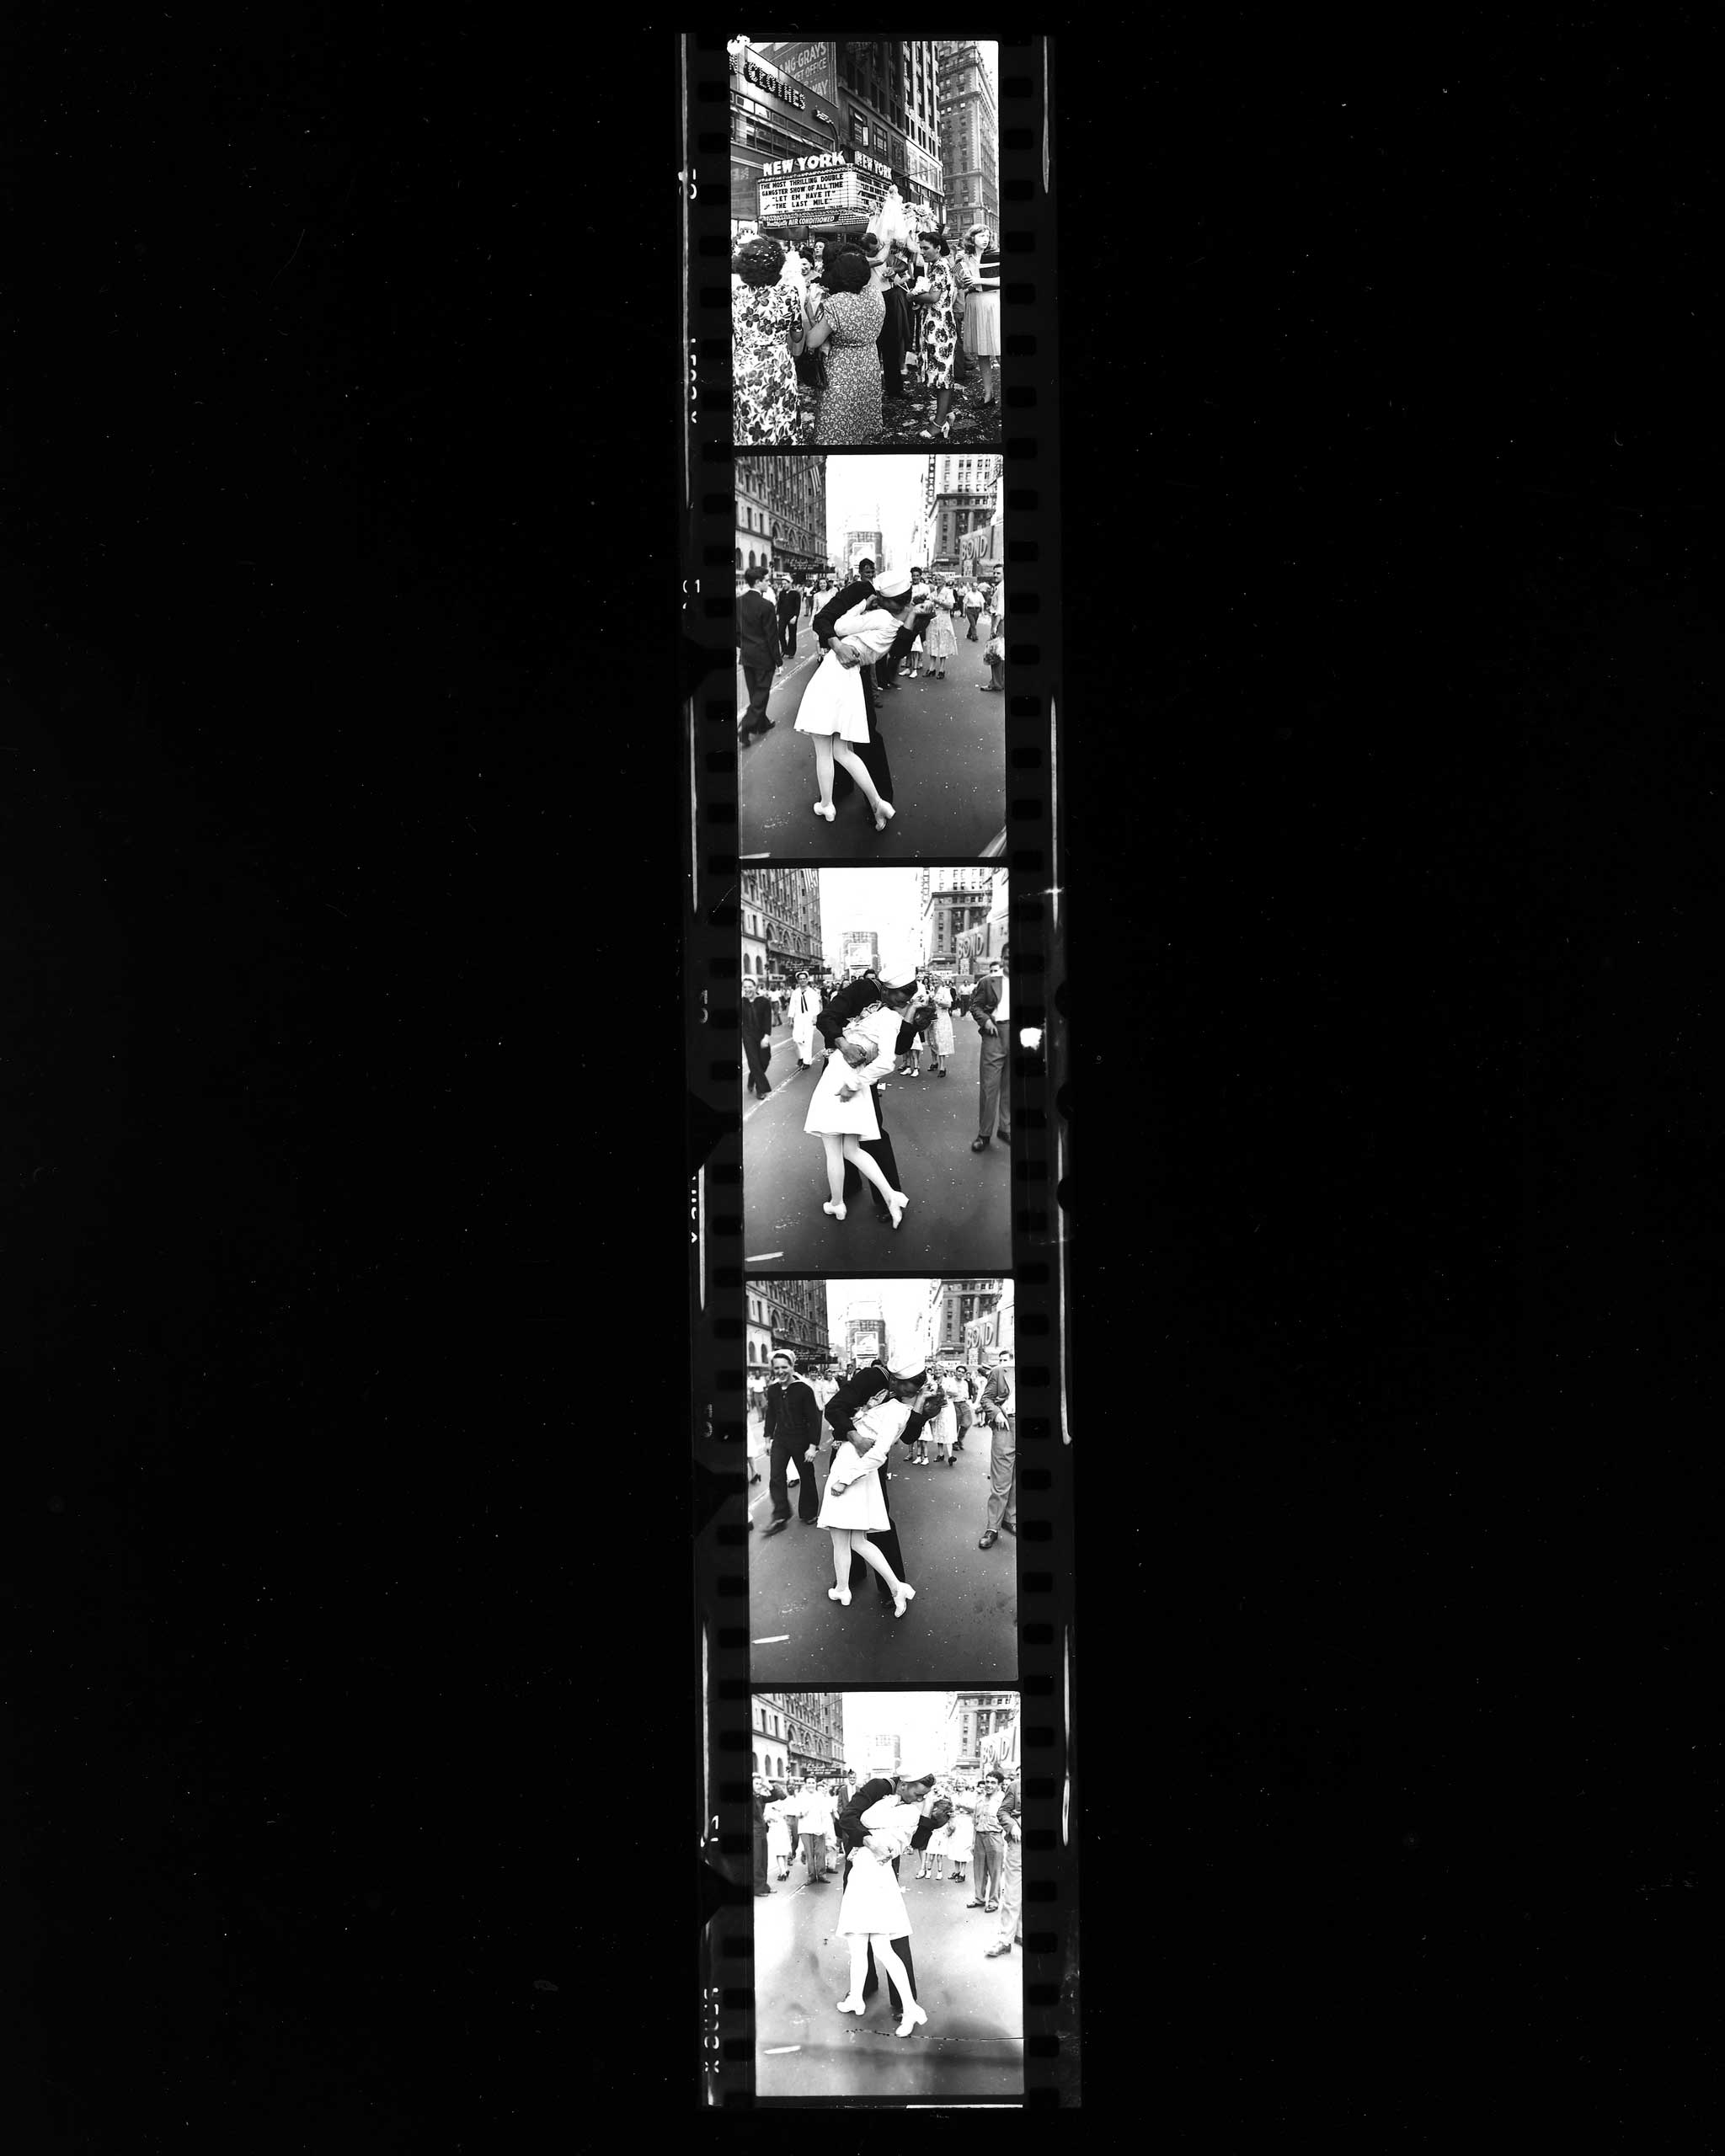 Contact sheet images from Alfred Eisenstaedt's film, Aug. 14, 1945.